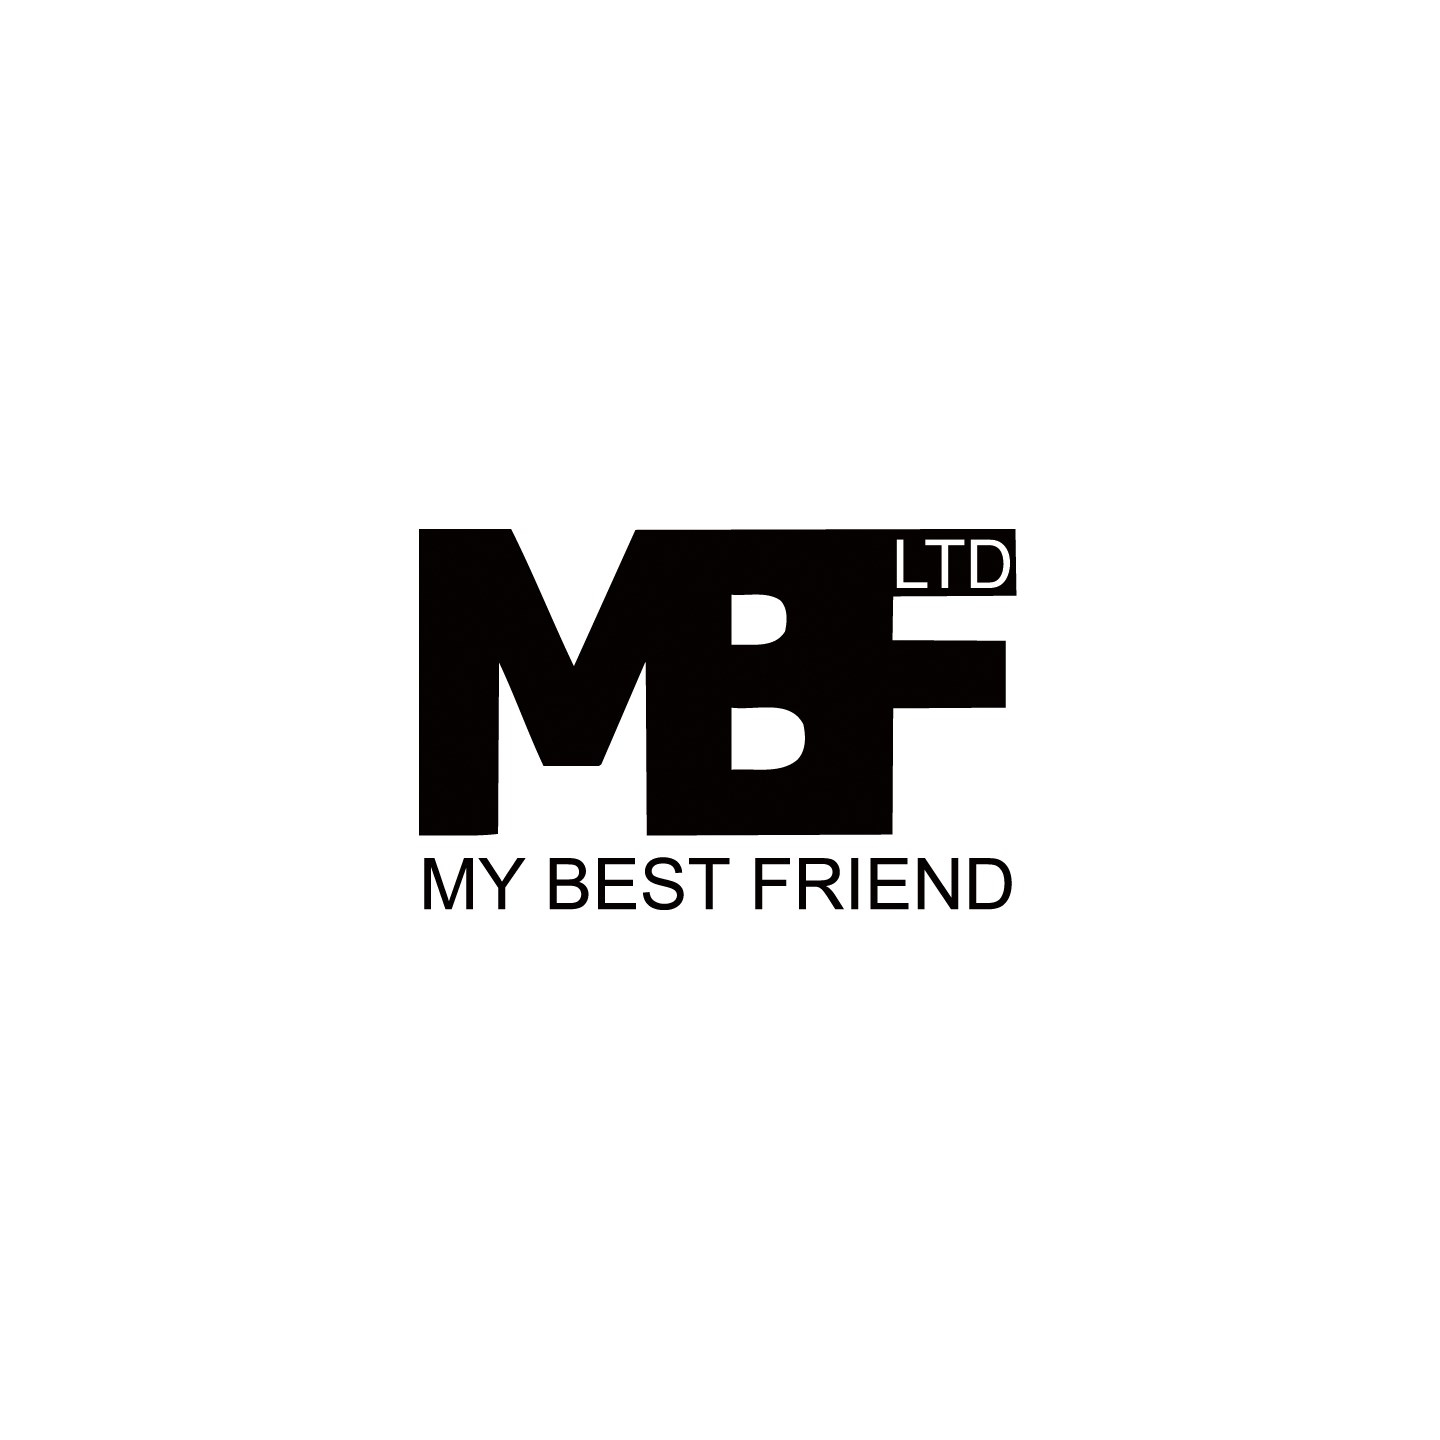 My Best Friend Limited